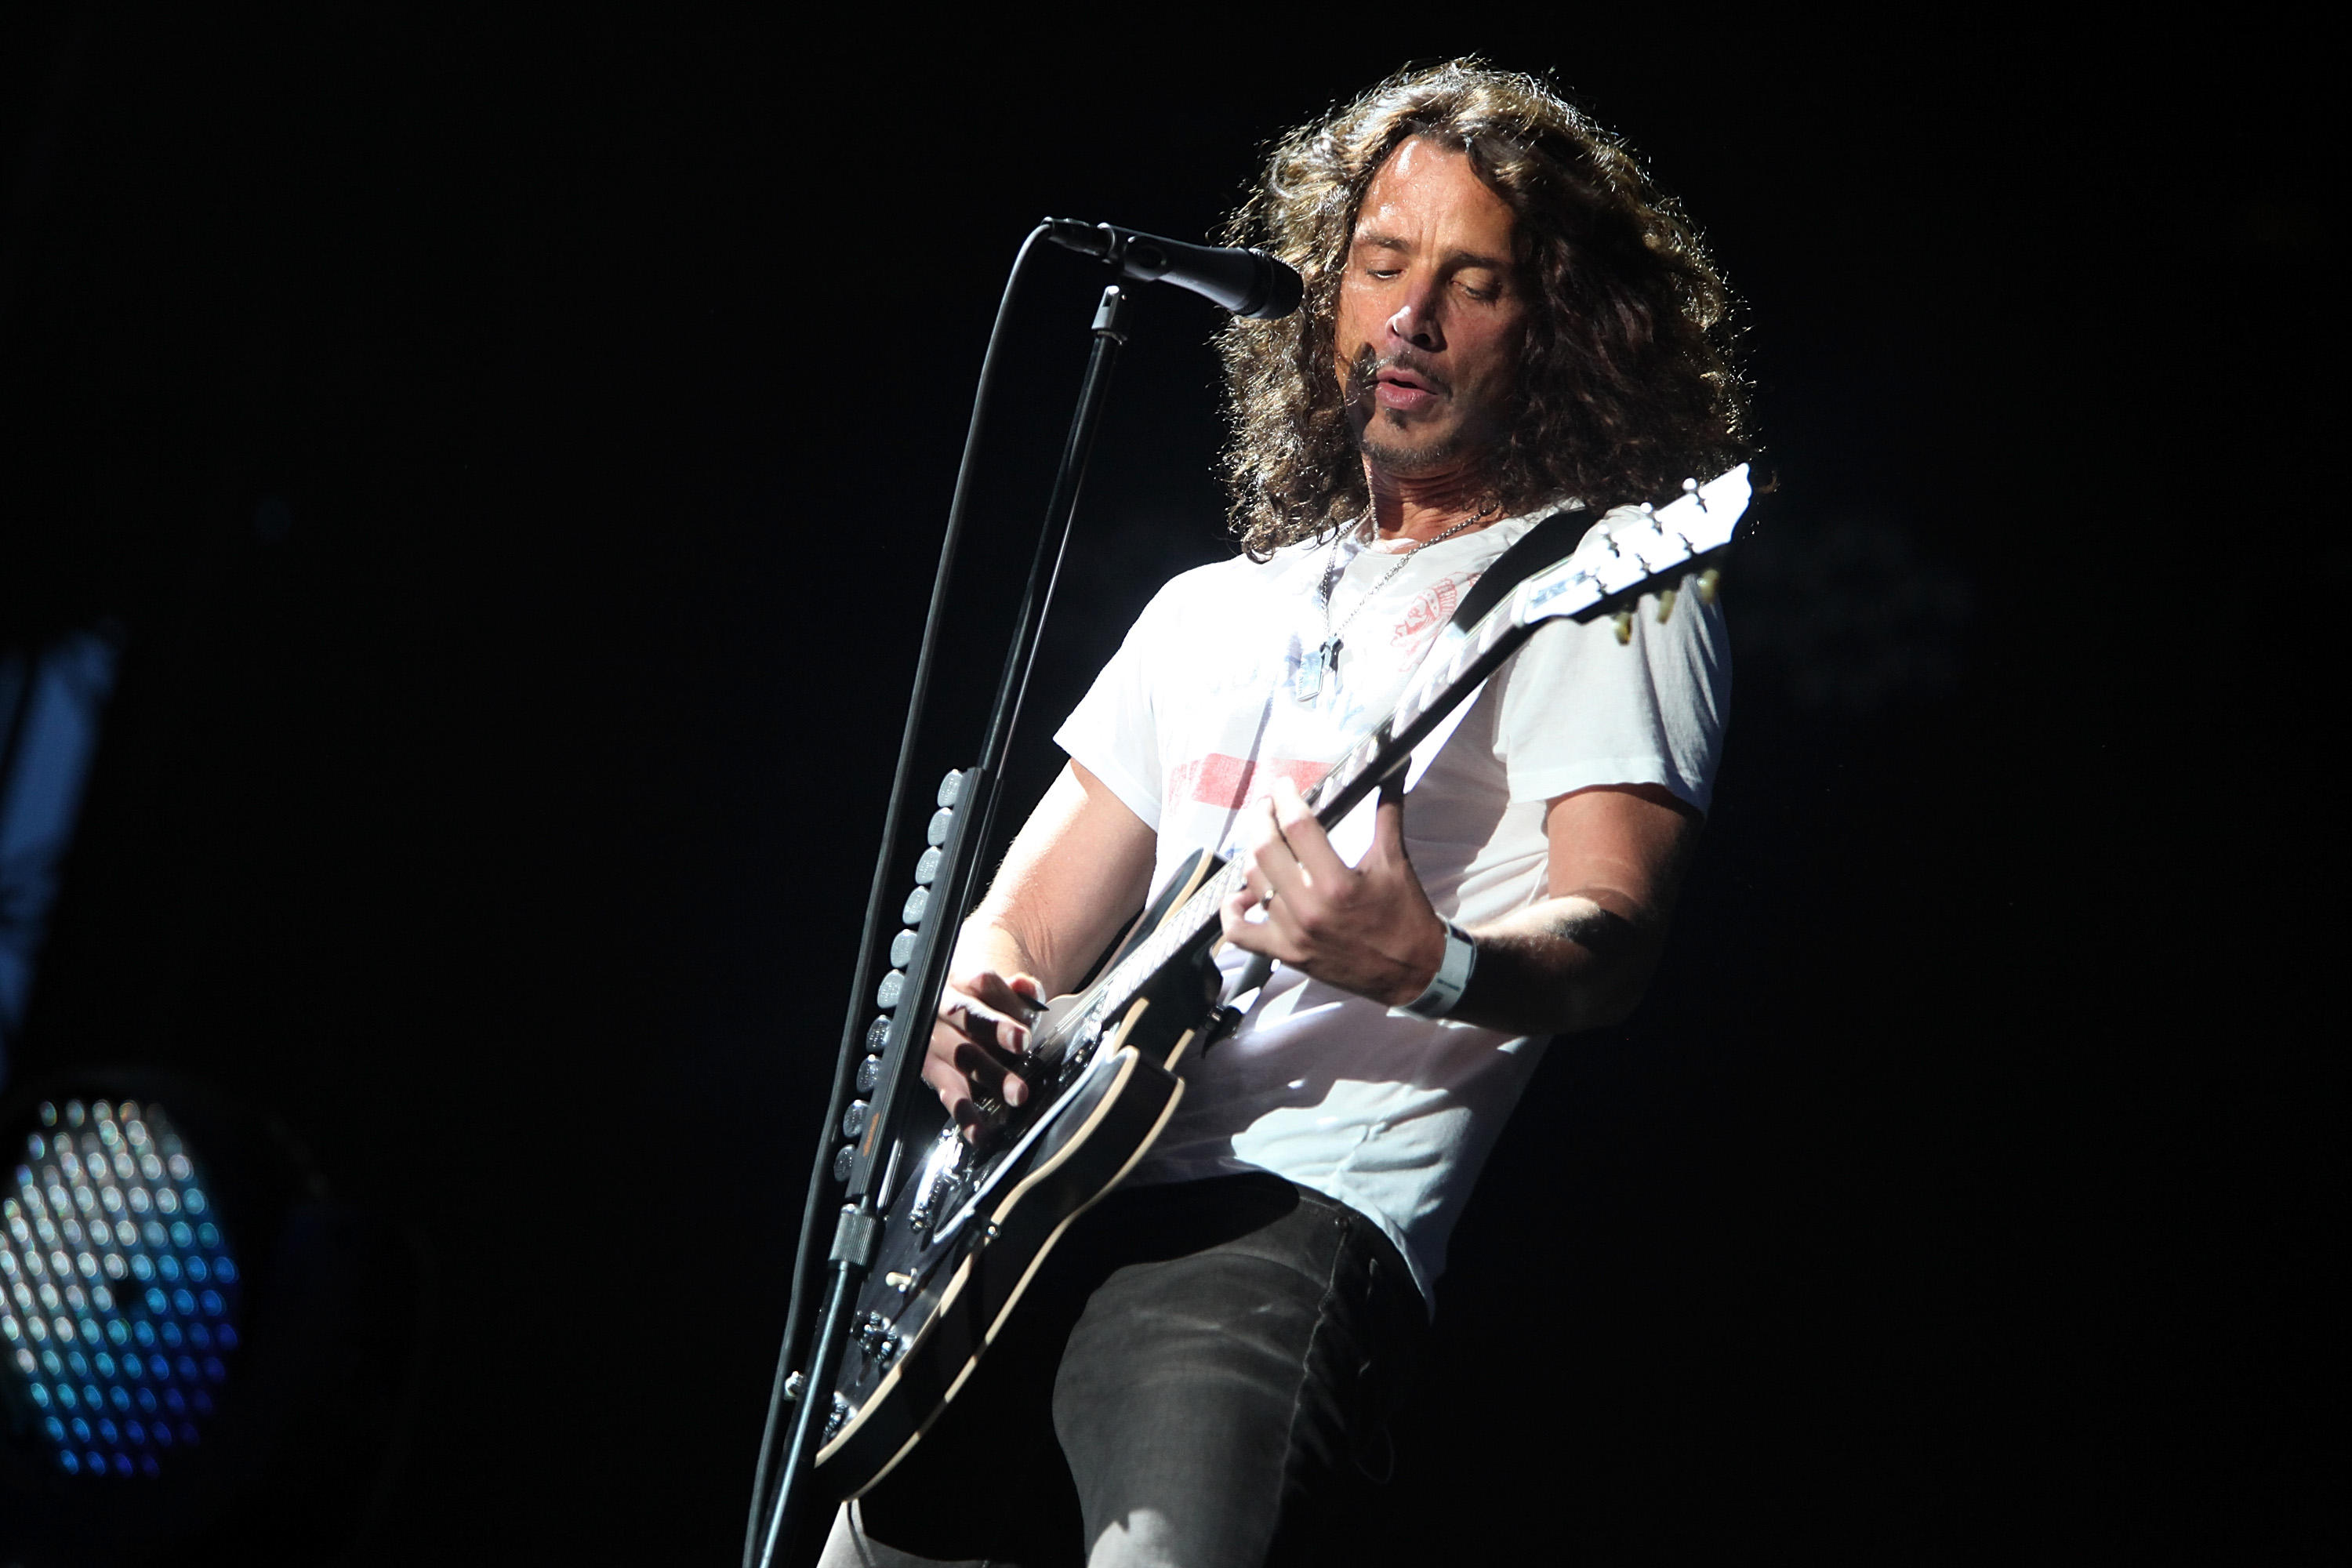 Chris Cornell: Chris Cornell Autopsy Finds Drugs Didn't Contribute To